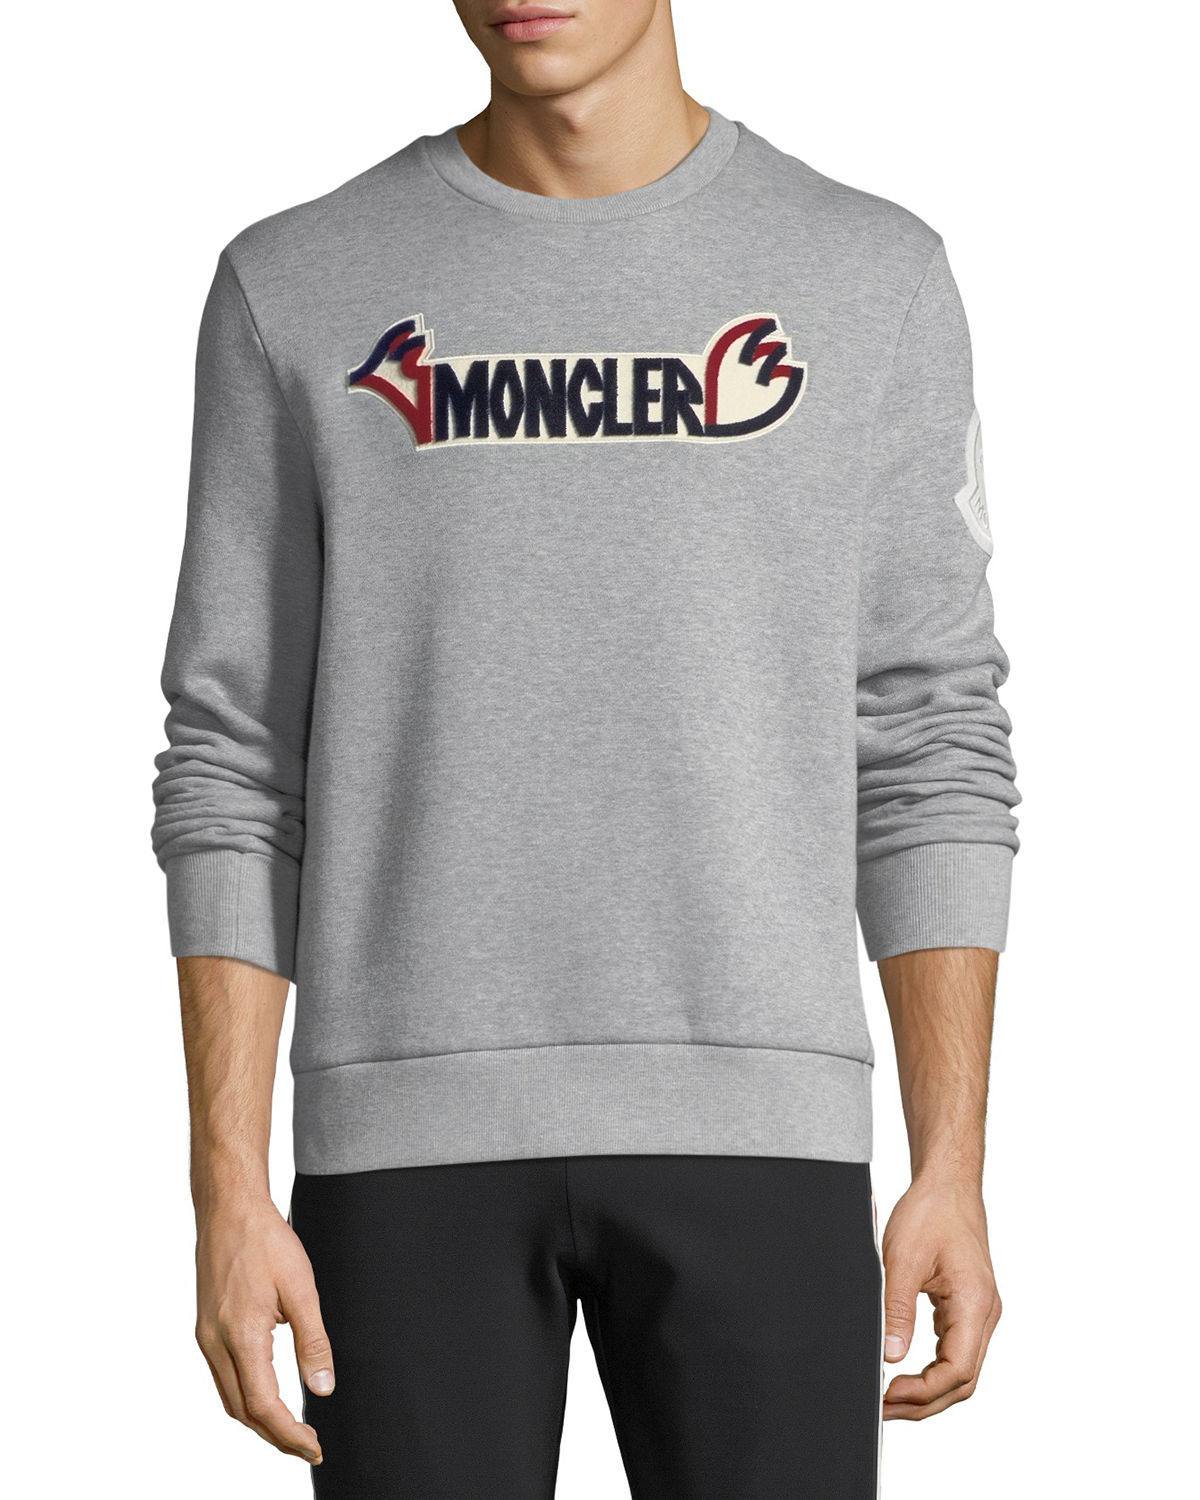 Men's Crewneck Logo Graphic Sweatshirt